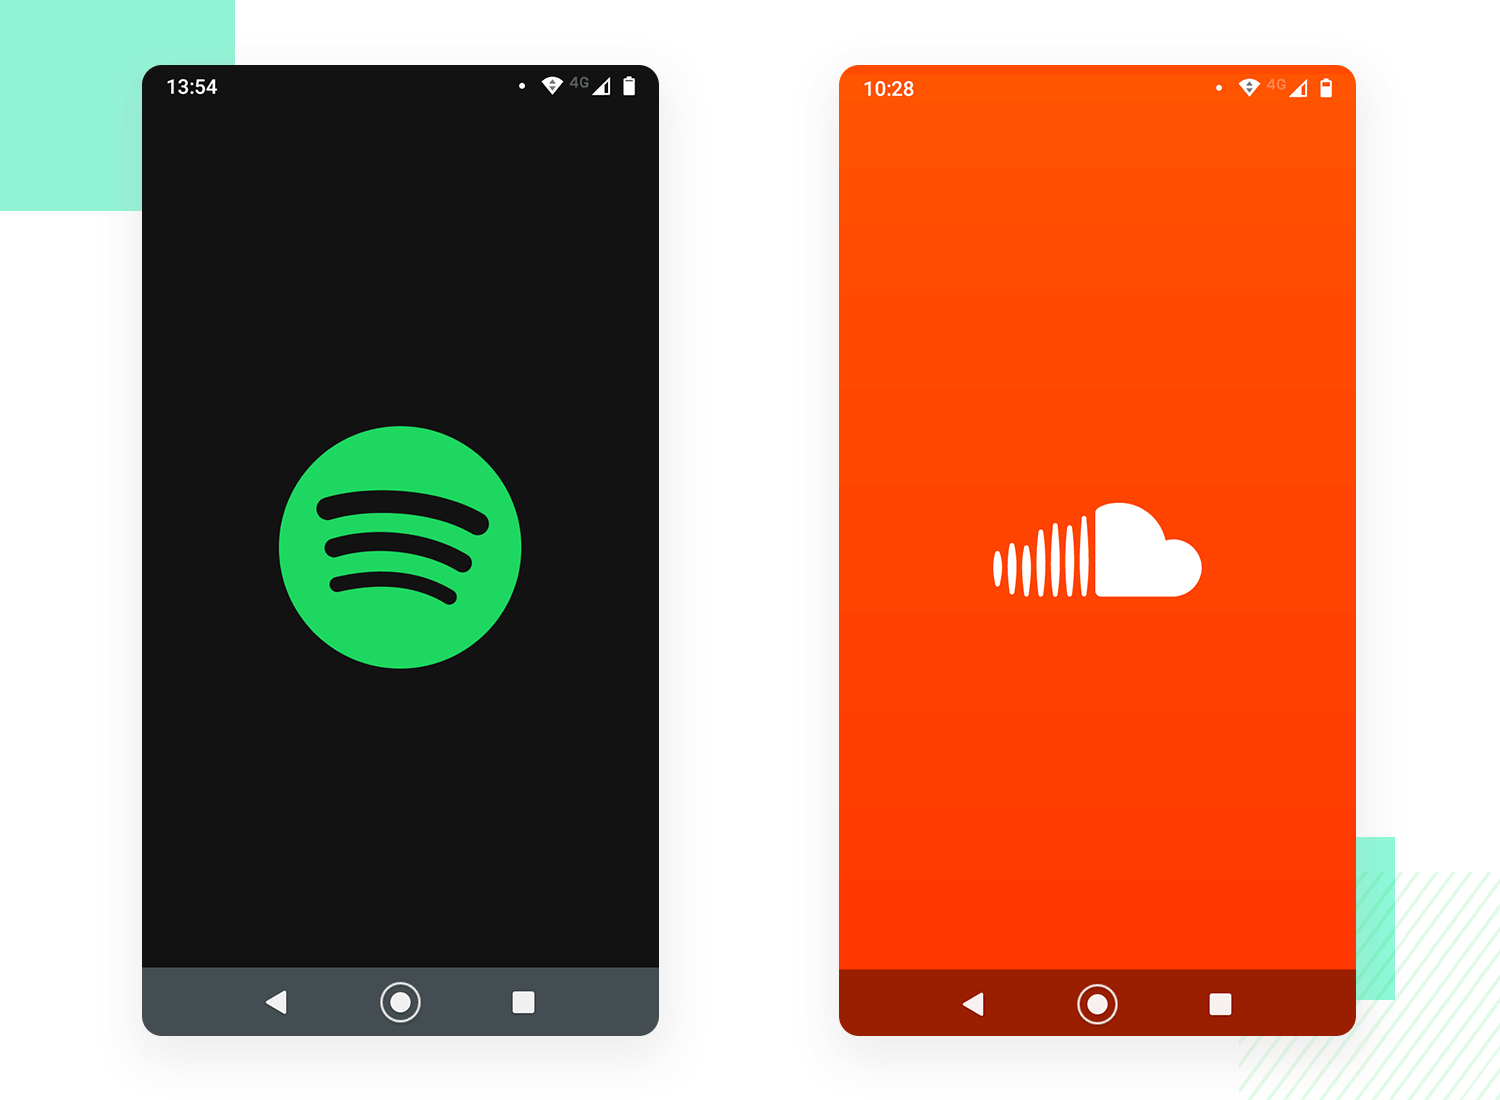 spotify and soundcloud splash screen examples